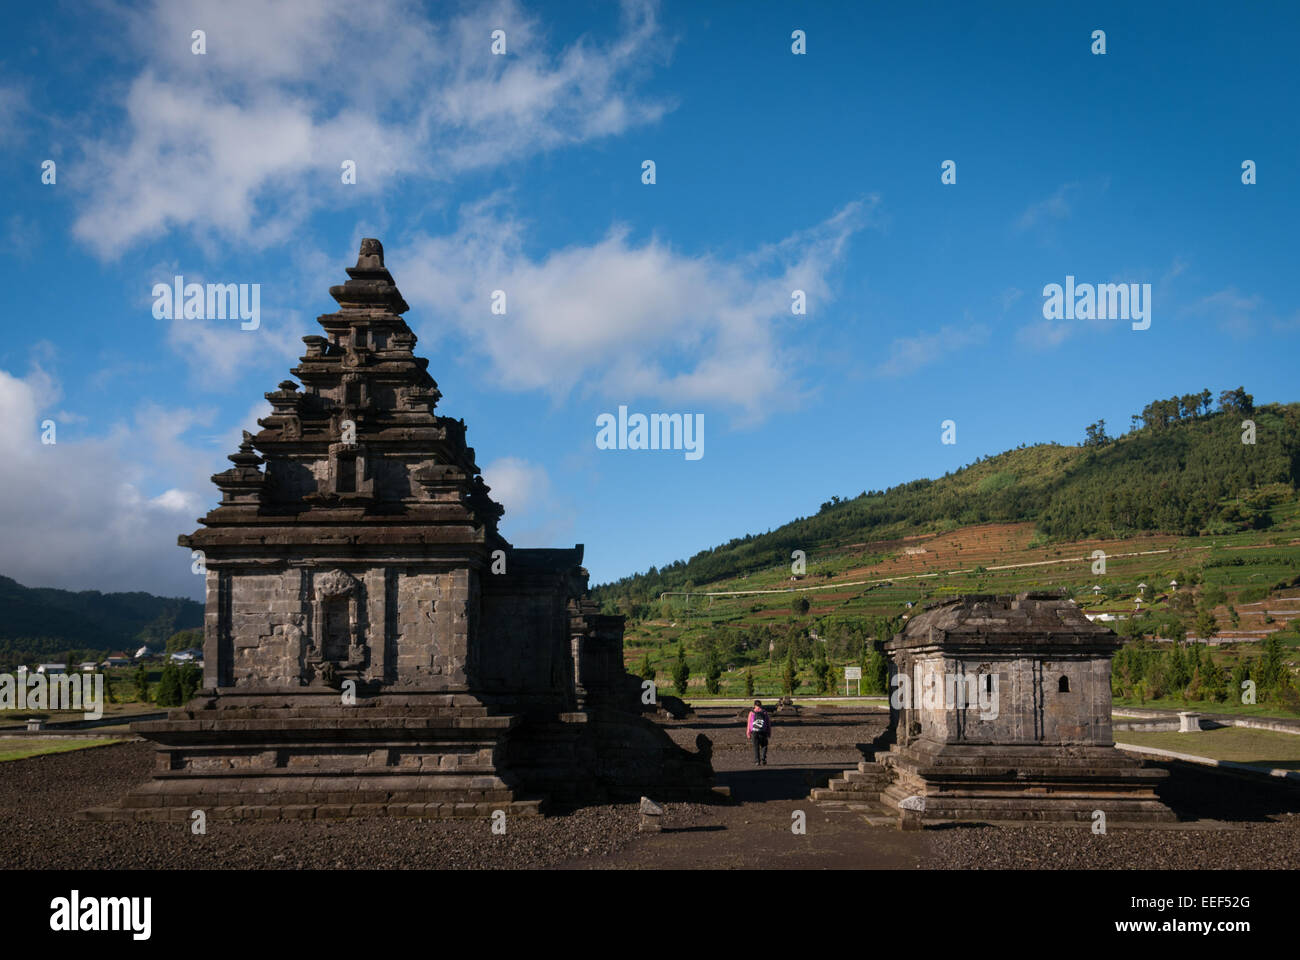 Arjuna temple complex in Dieng Plateau, Central Java. - Stock Image